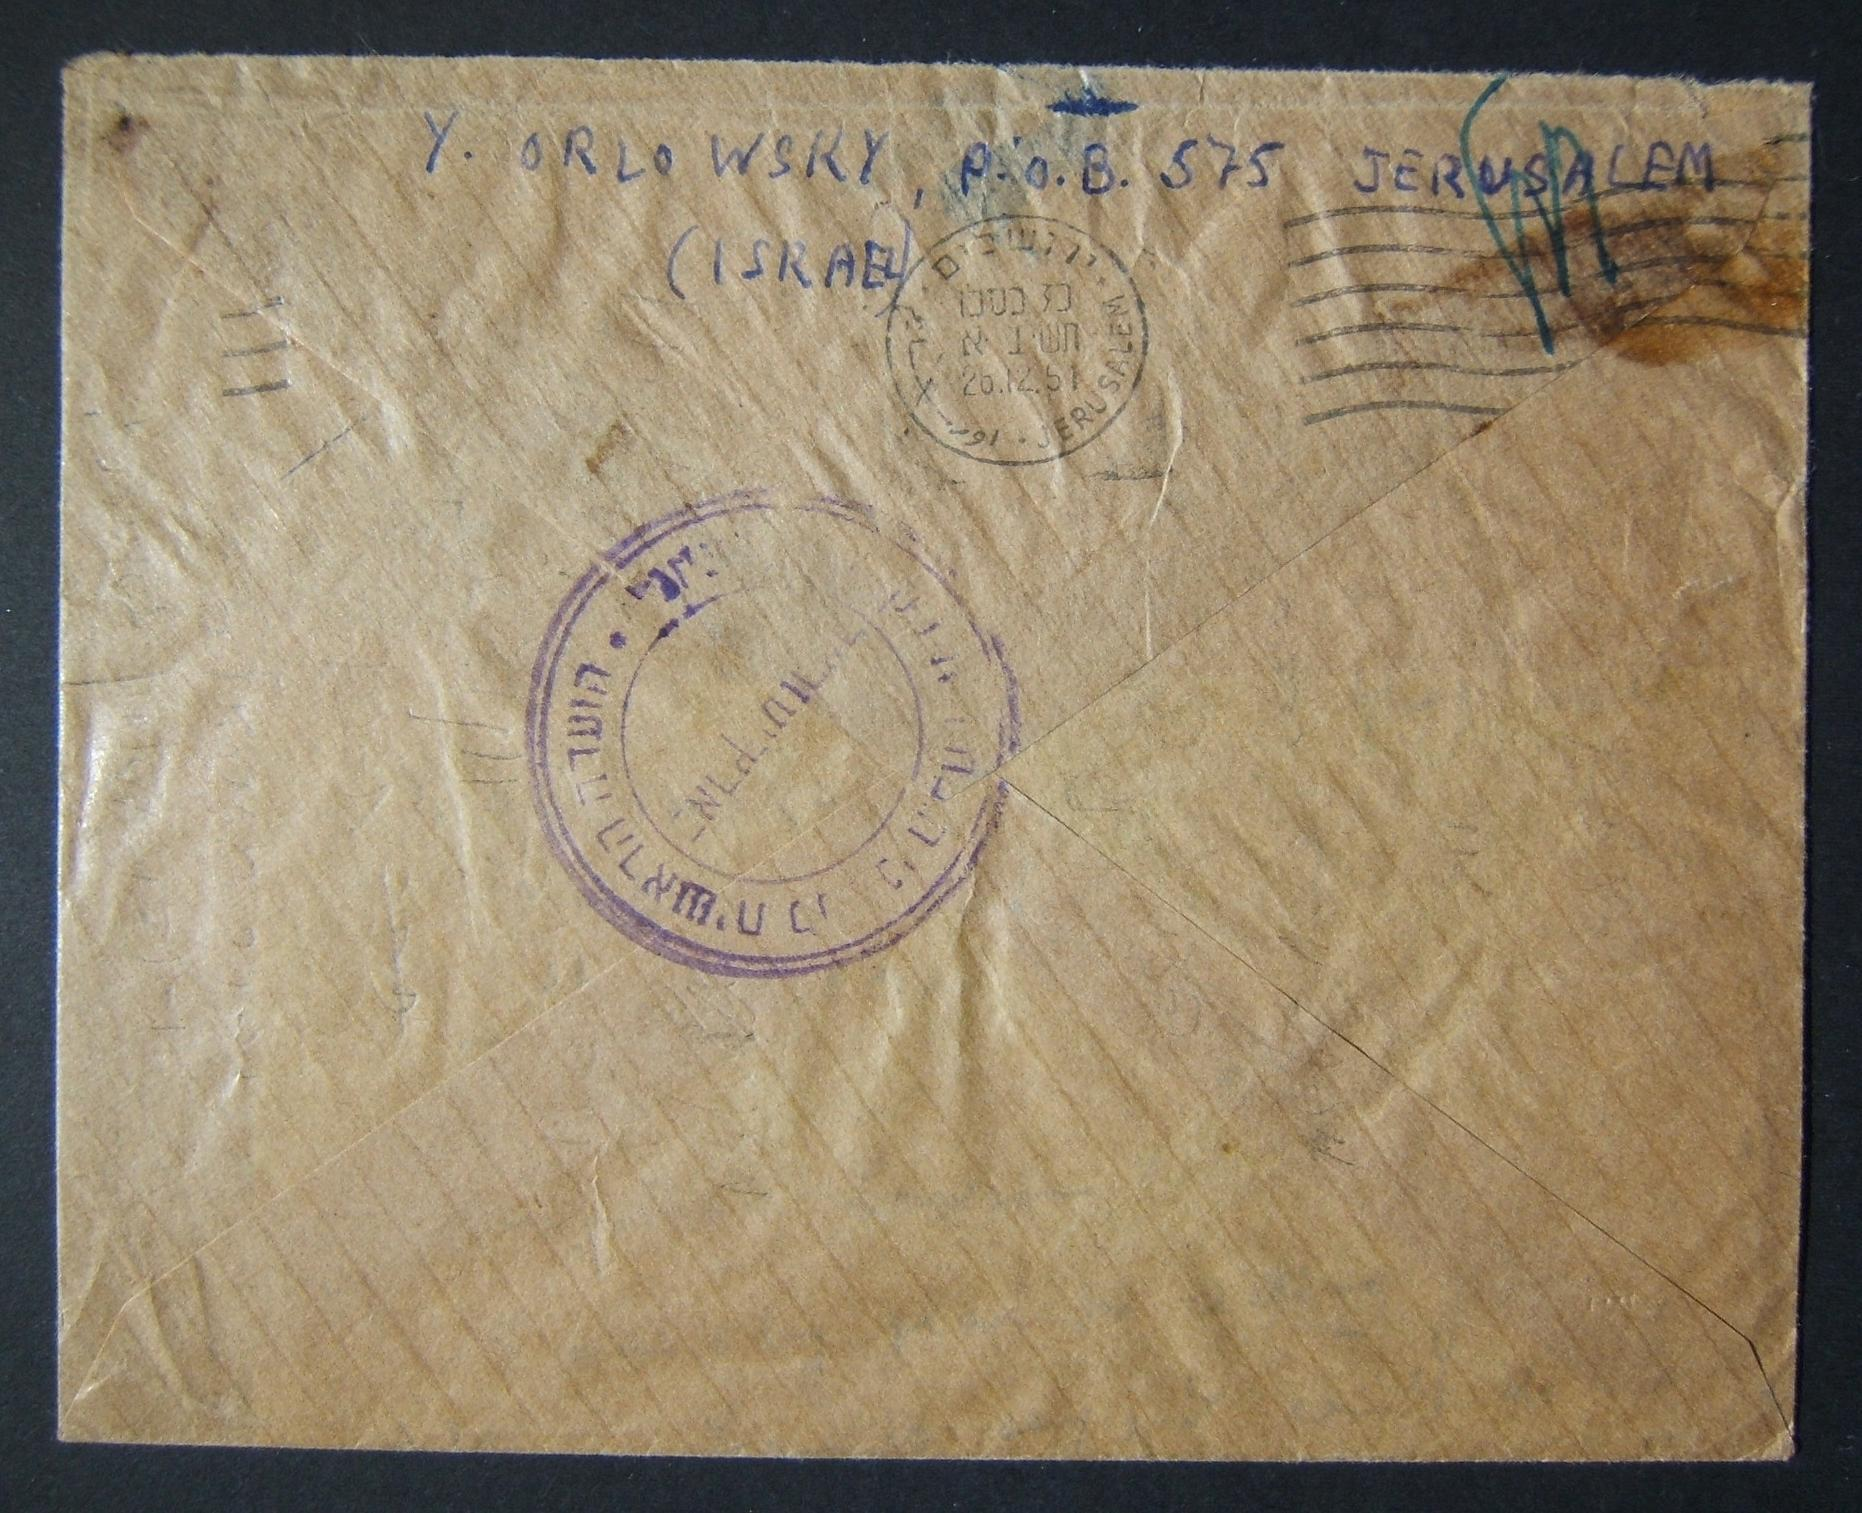 1950 1st airmail / PO's, rates & routes: 11-1-1952 reused cover (ex Pardes Hana BO to Jerusalem, 25-26/12/51, with cancelled 15pr frank & pre-existing Mandate era back-stamped orga